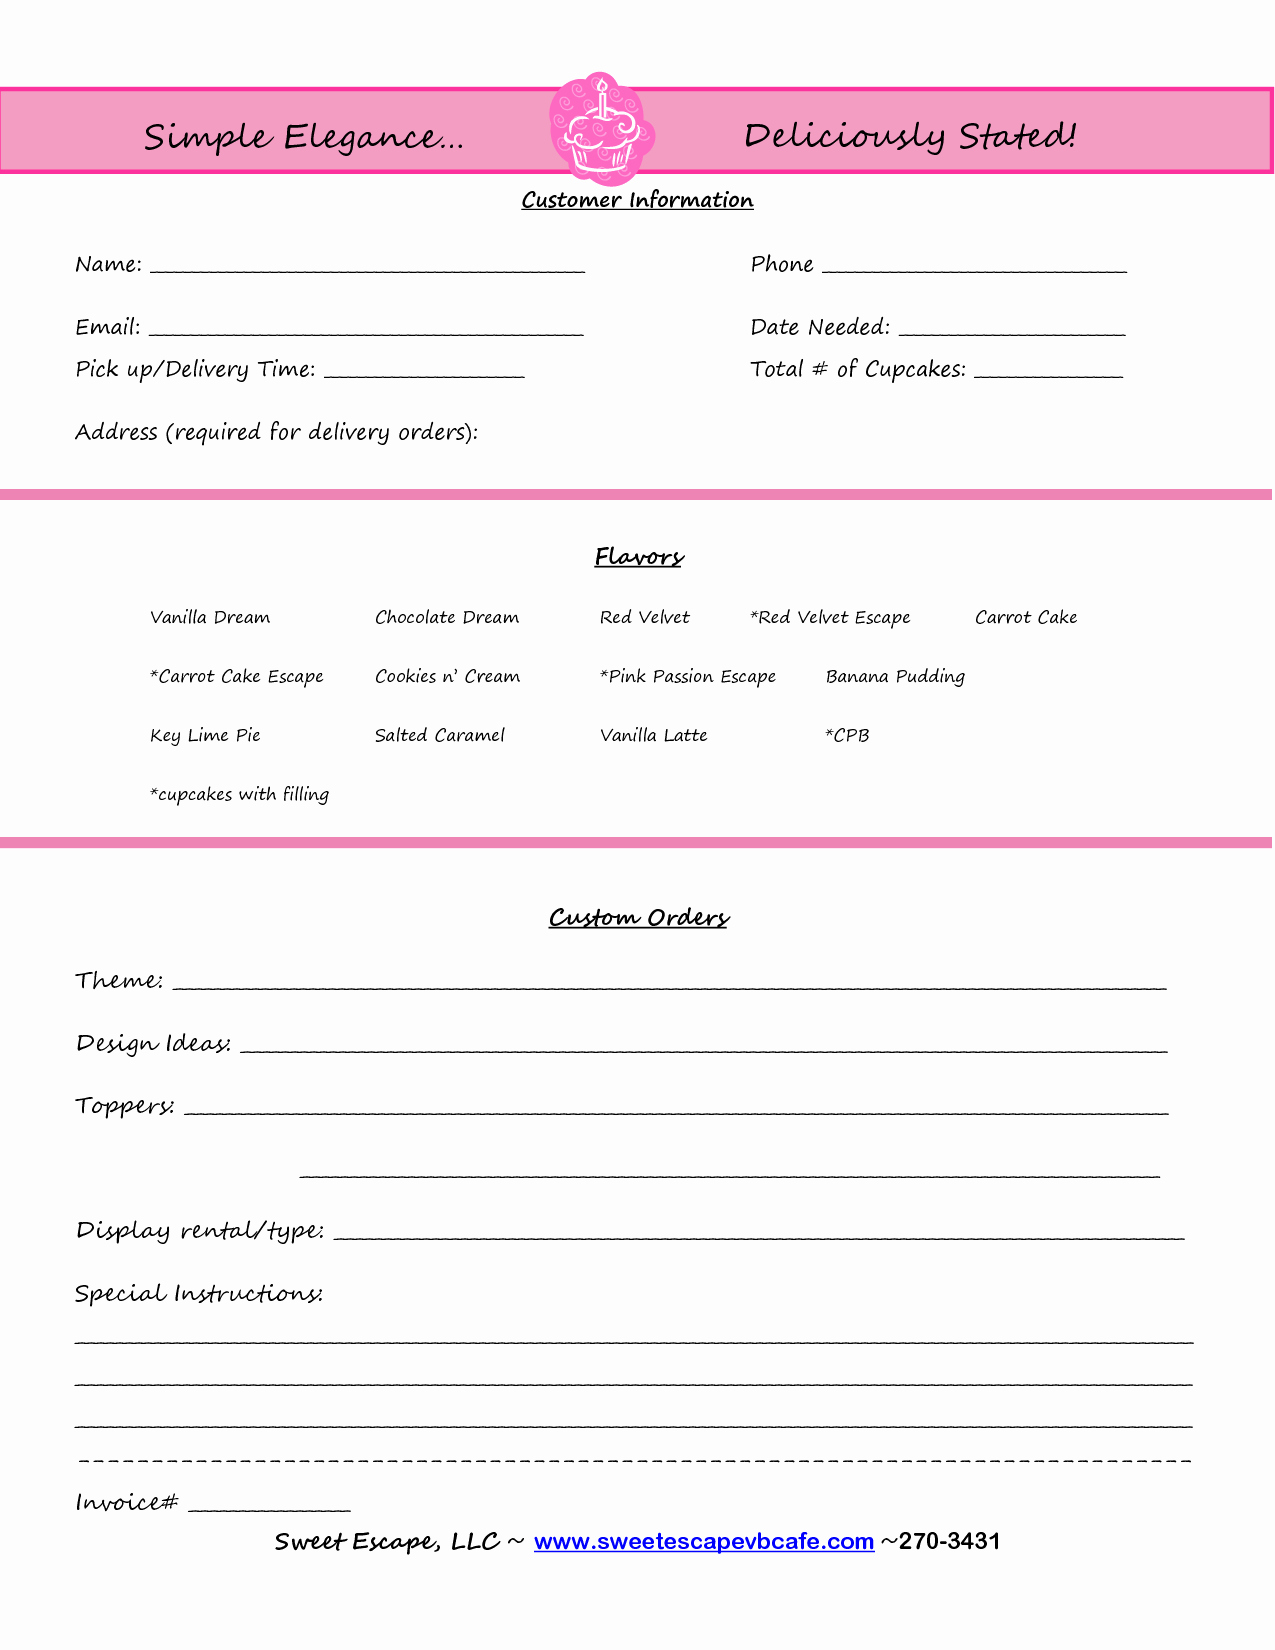 Bakery order forms Template Fresh Cake order form Templates Free Cupcakes